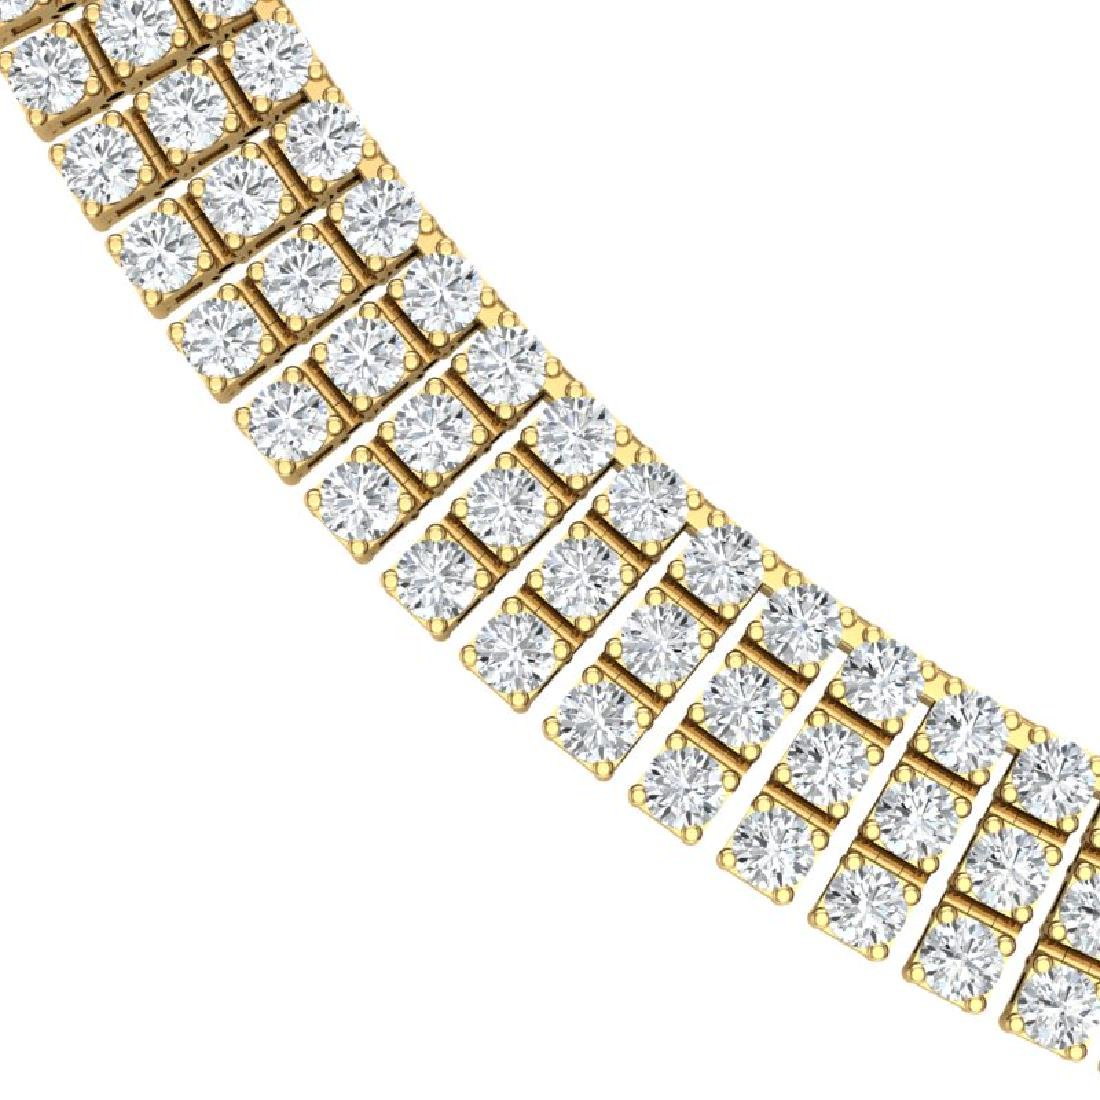 30 CTW Certified SI/I Diamond Necklace 18K Yellow Gold - 2